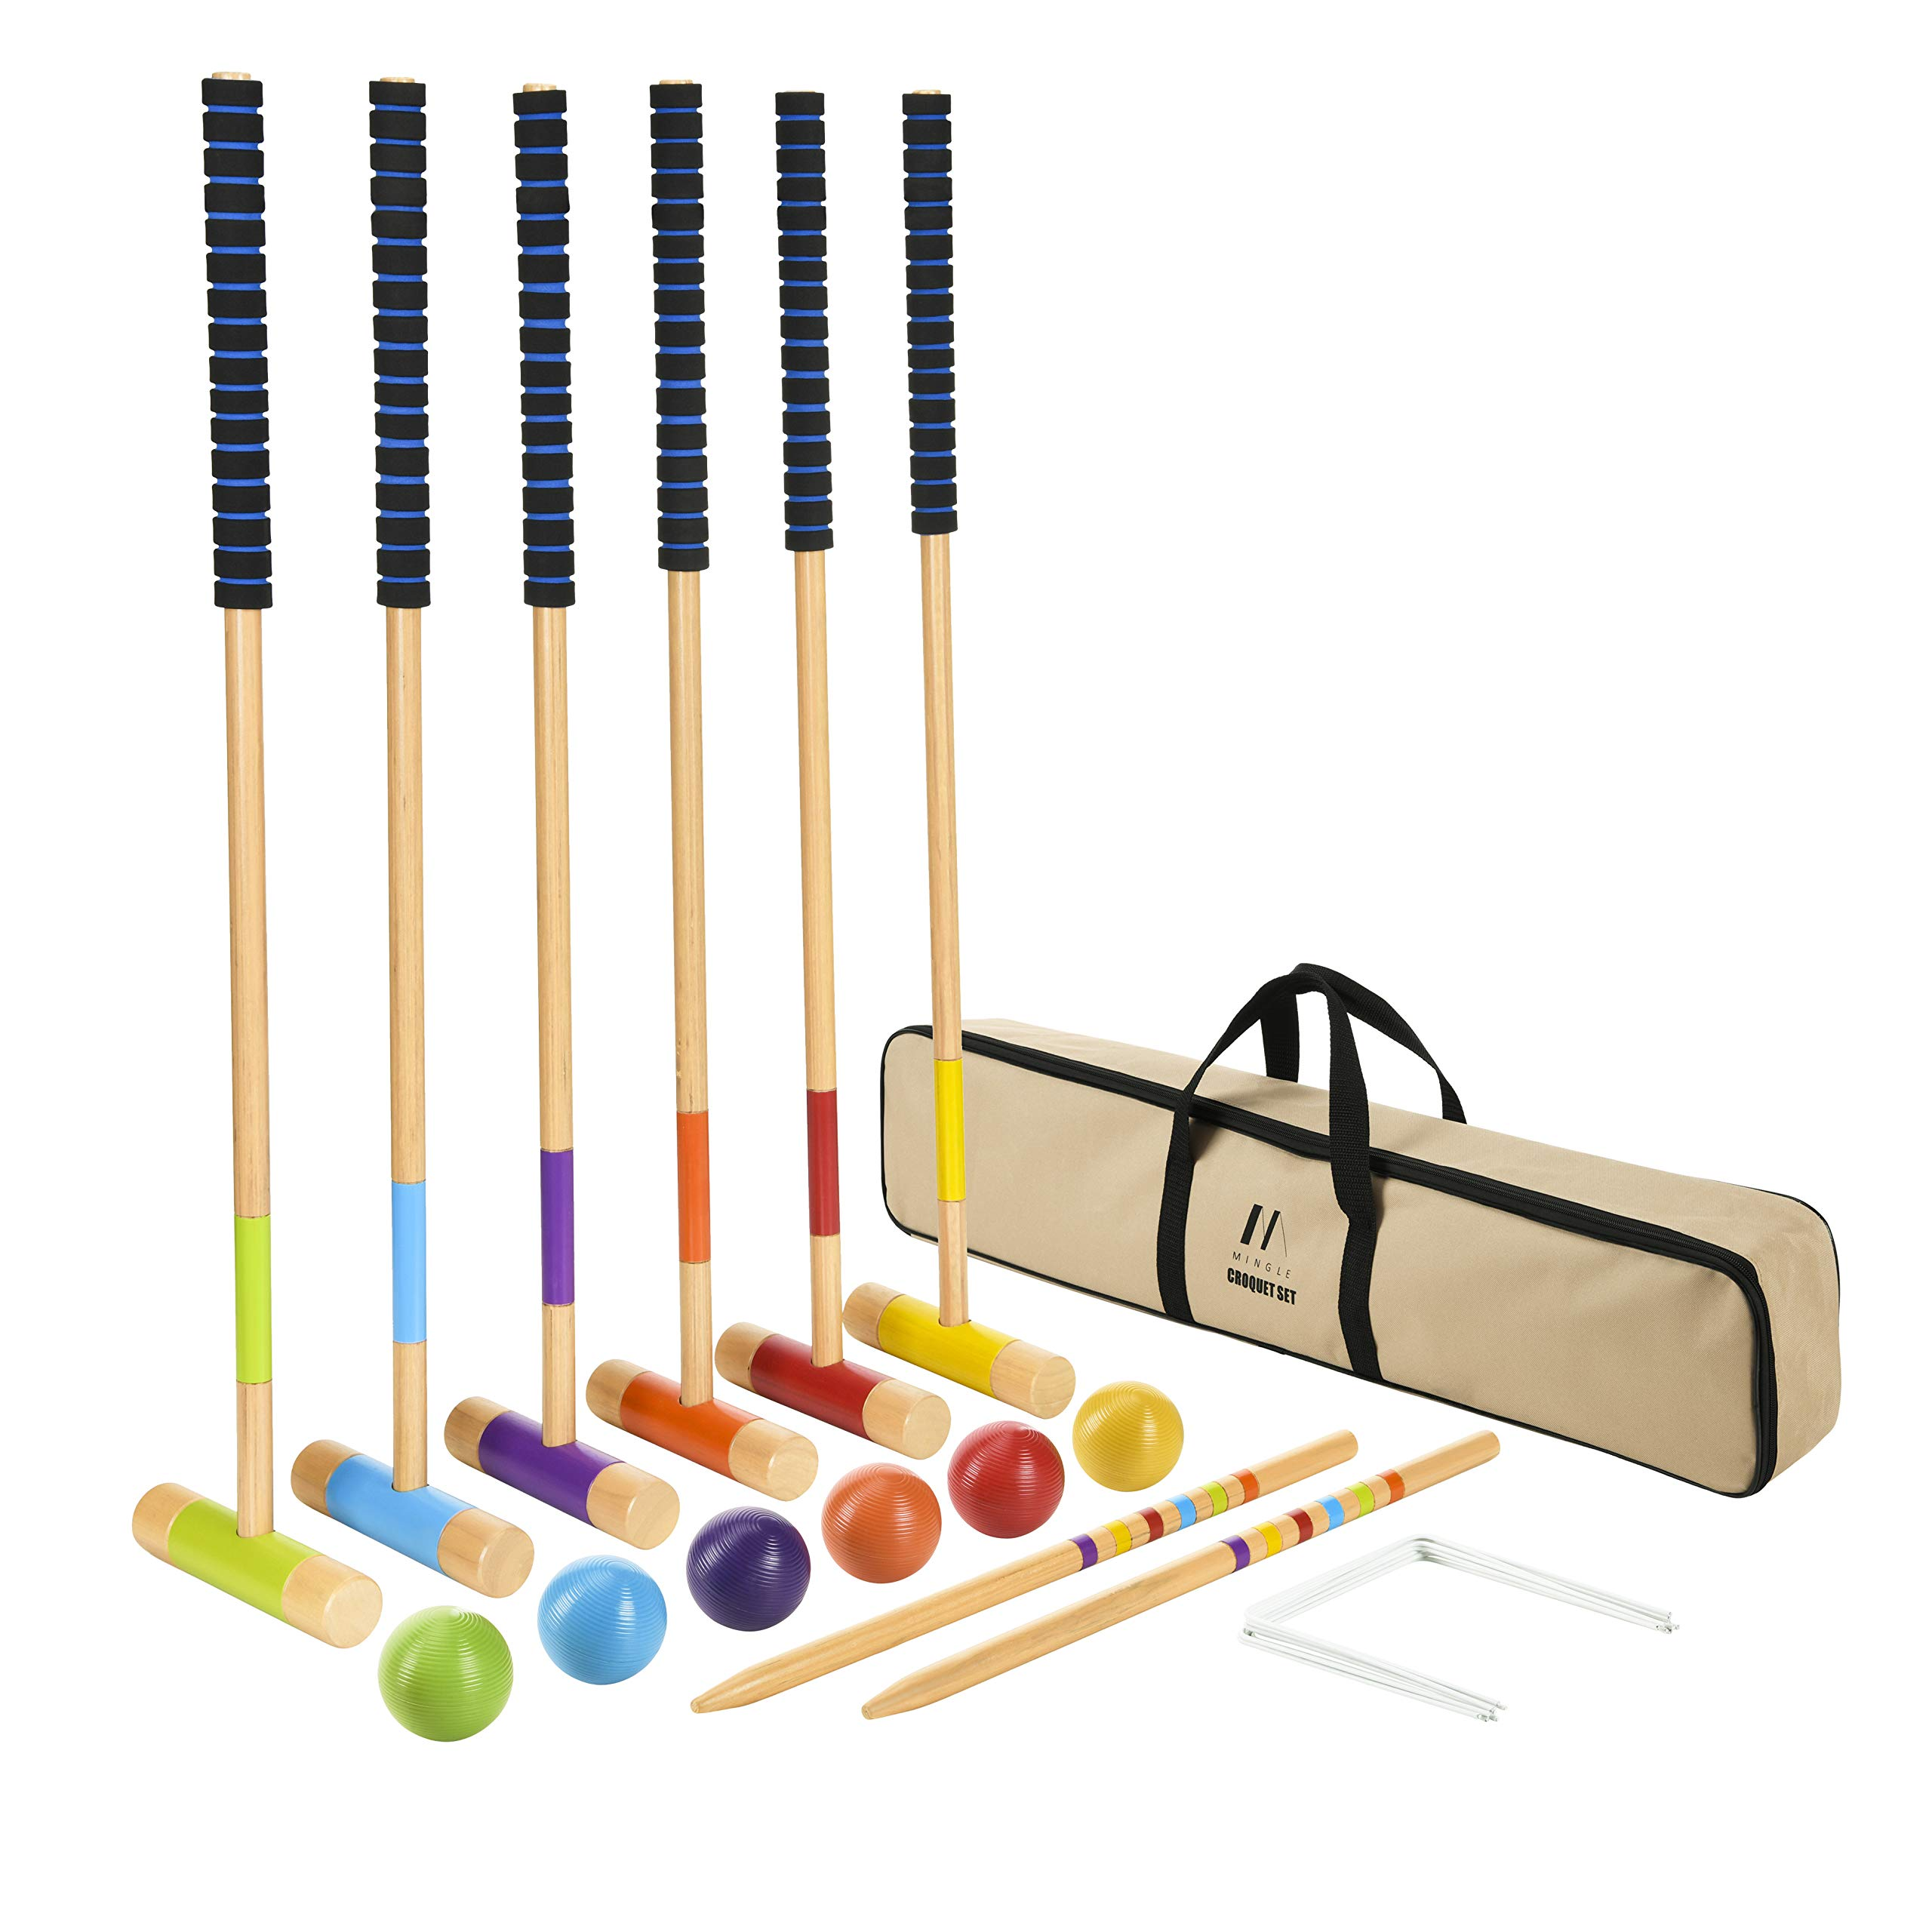 M MINGLE 35 inch Deluxe Croquet Set for Adults, Kids and Families with Carrying Case by M MINGLE (Image #1)